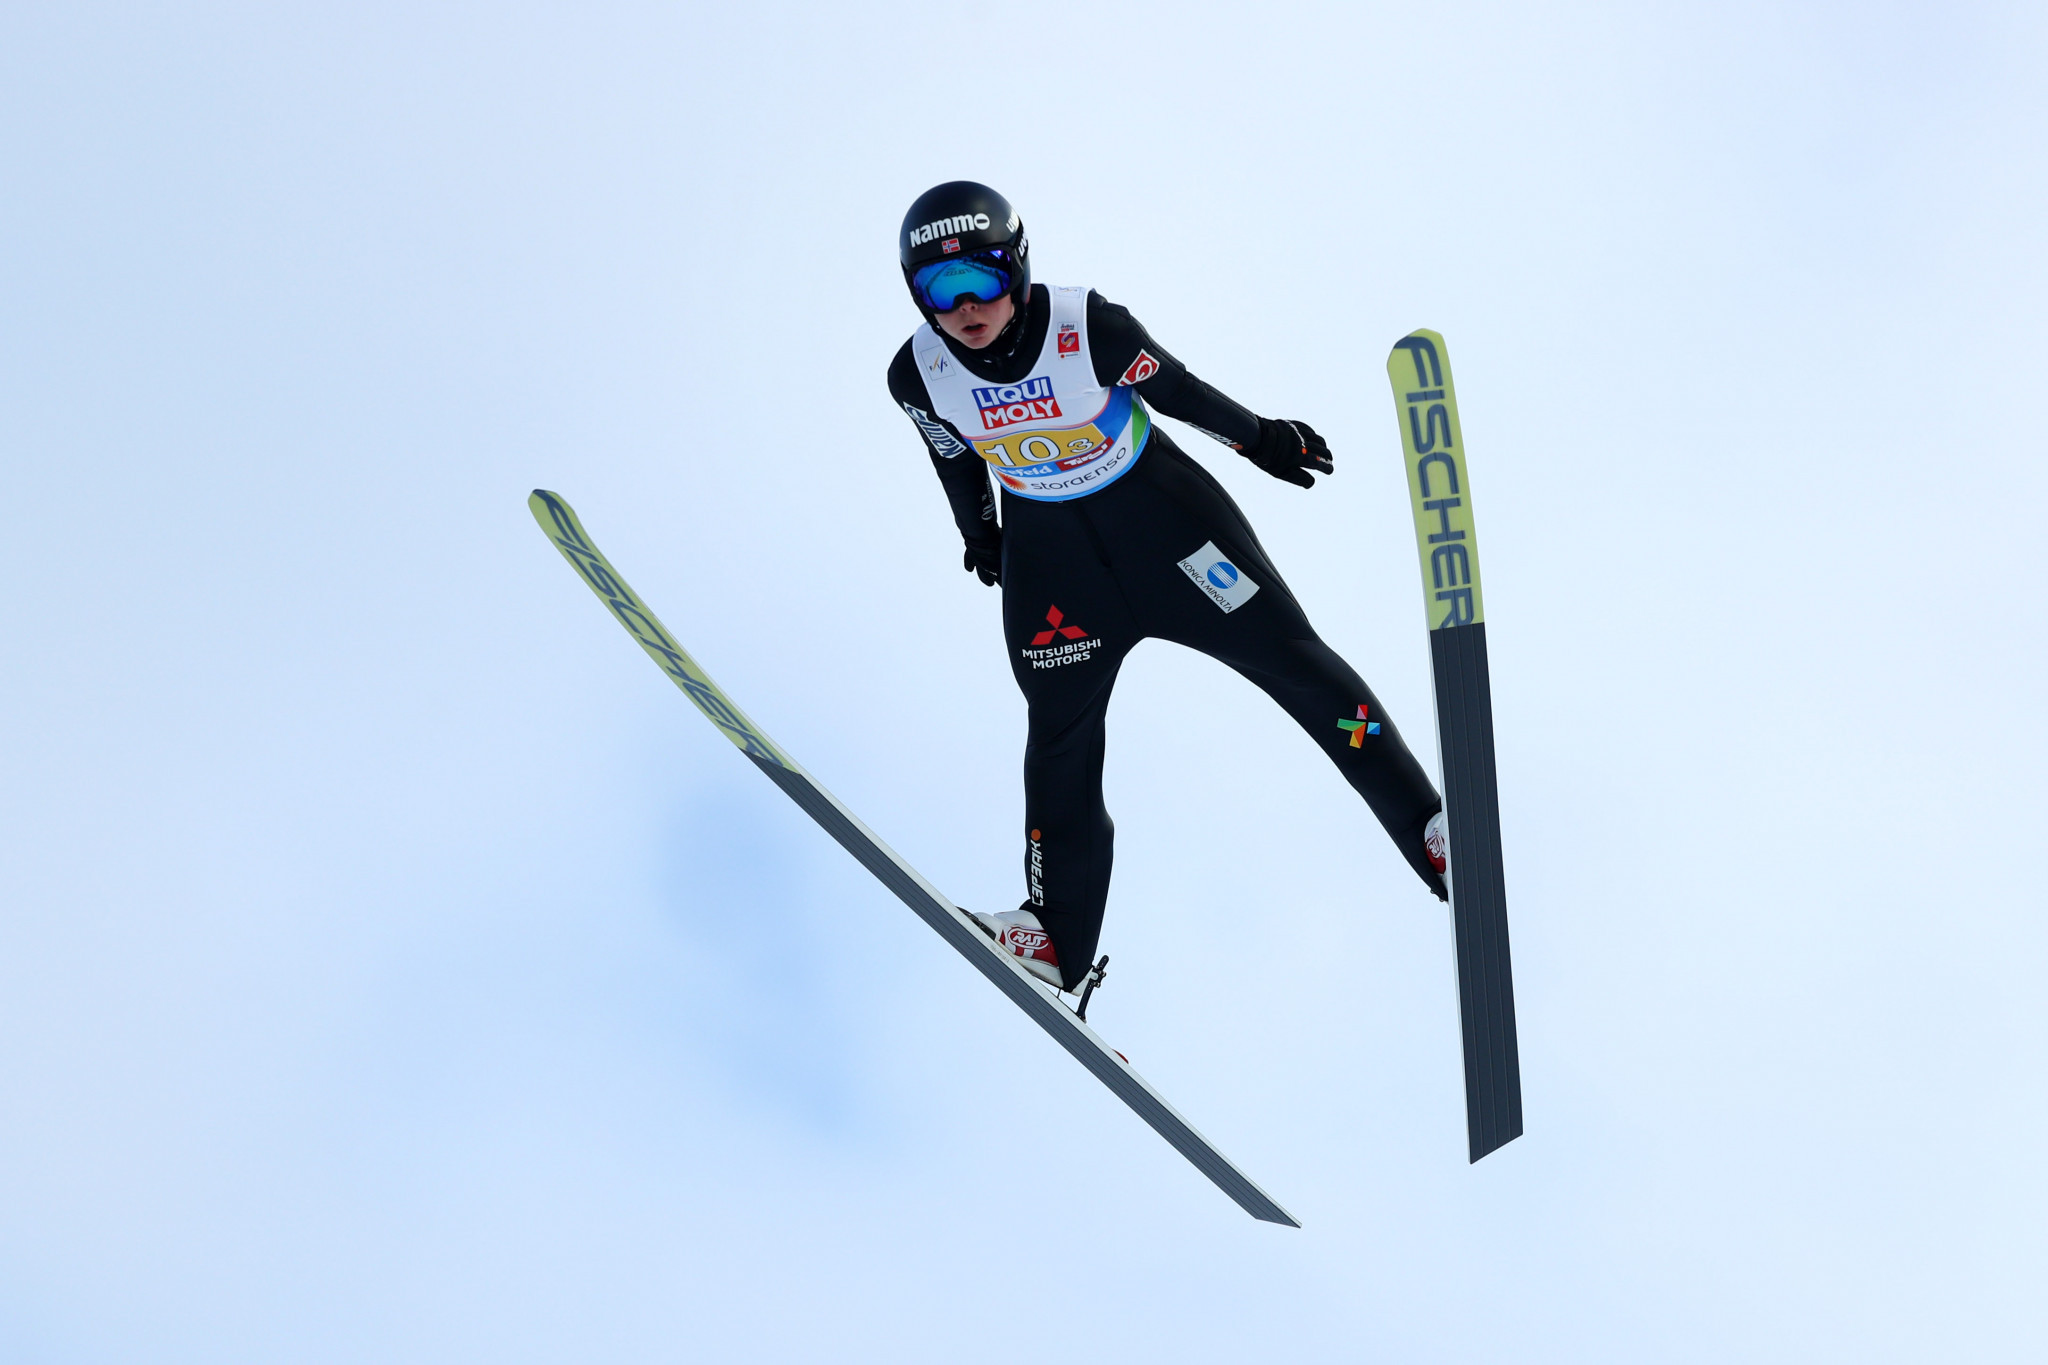 Norway's Olympic champion Lundby wins Ski Jump World Cup opener at home arena